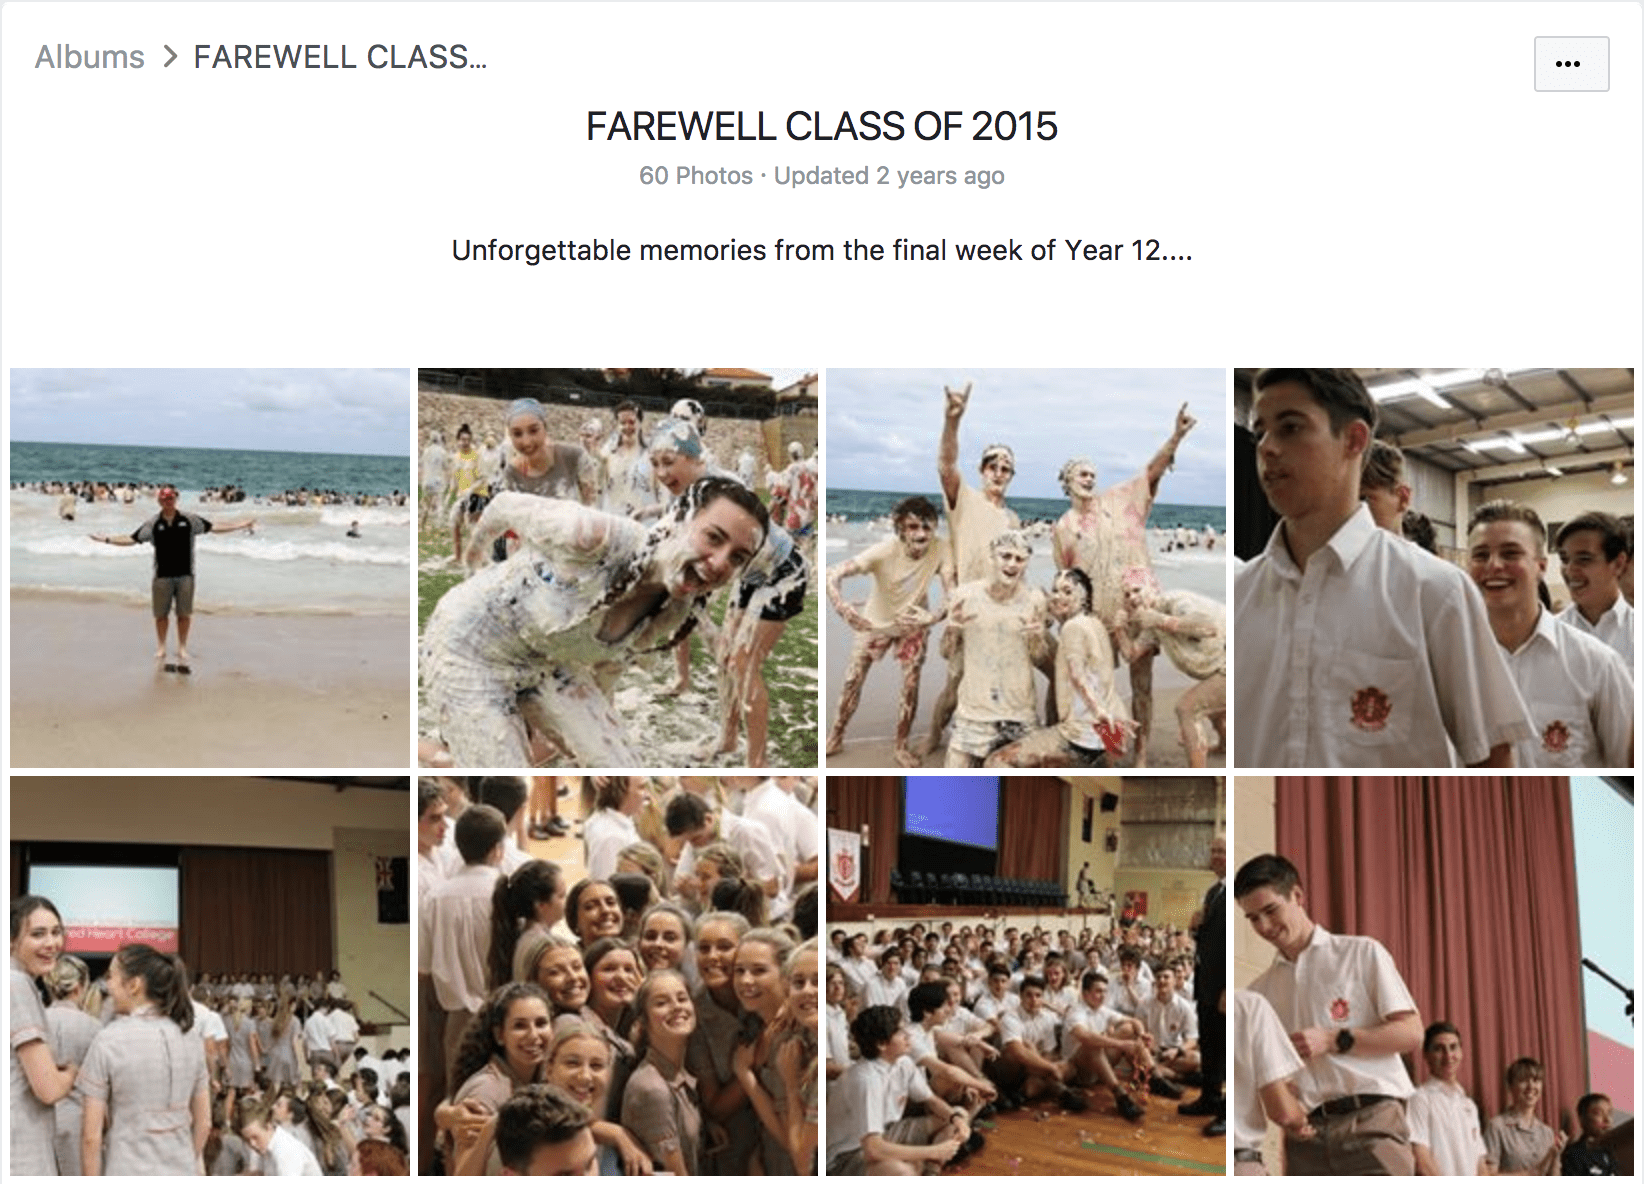 Sacred Heart College in Perth, Australia, shared this album with memories from their graduates from 2015